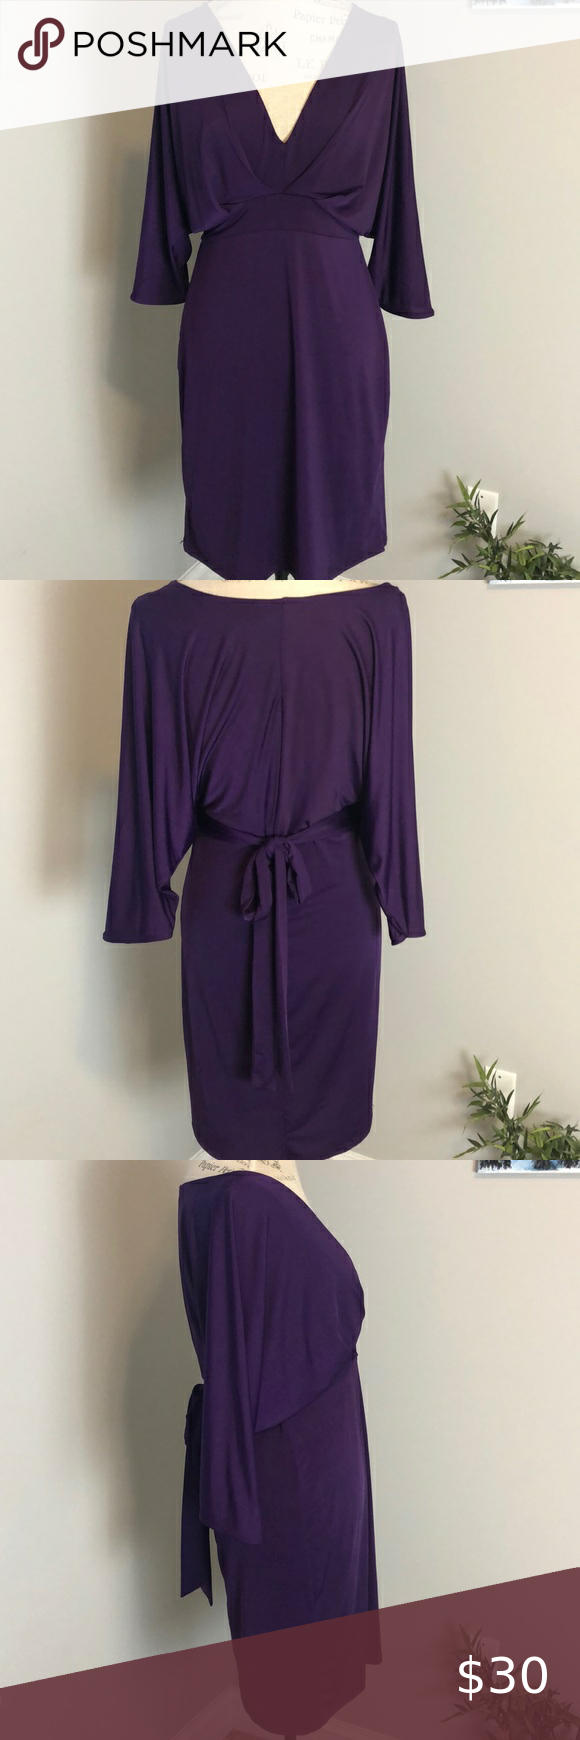 A Wear Purple V Neck Dress Excellent Worn Once Condition Stretchy Material 1 2 Dolman Sleeves Kept In Maroon Long Sleeve Dress Mini Shirt Dress V Neck Dress [ 1740 x 580 Pixel ]